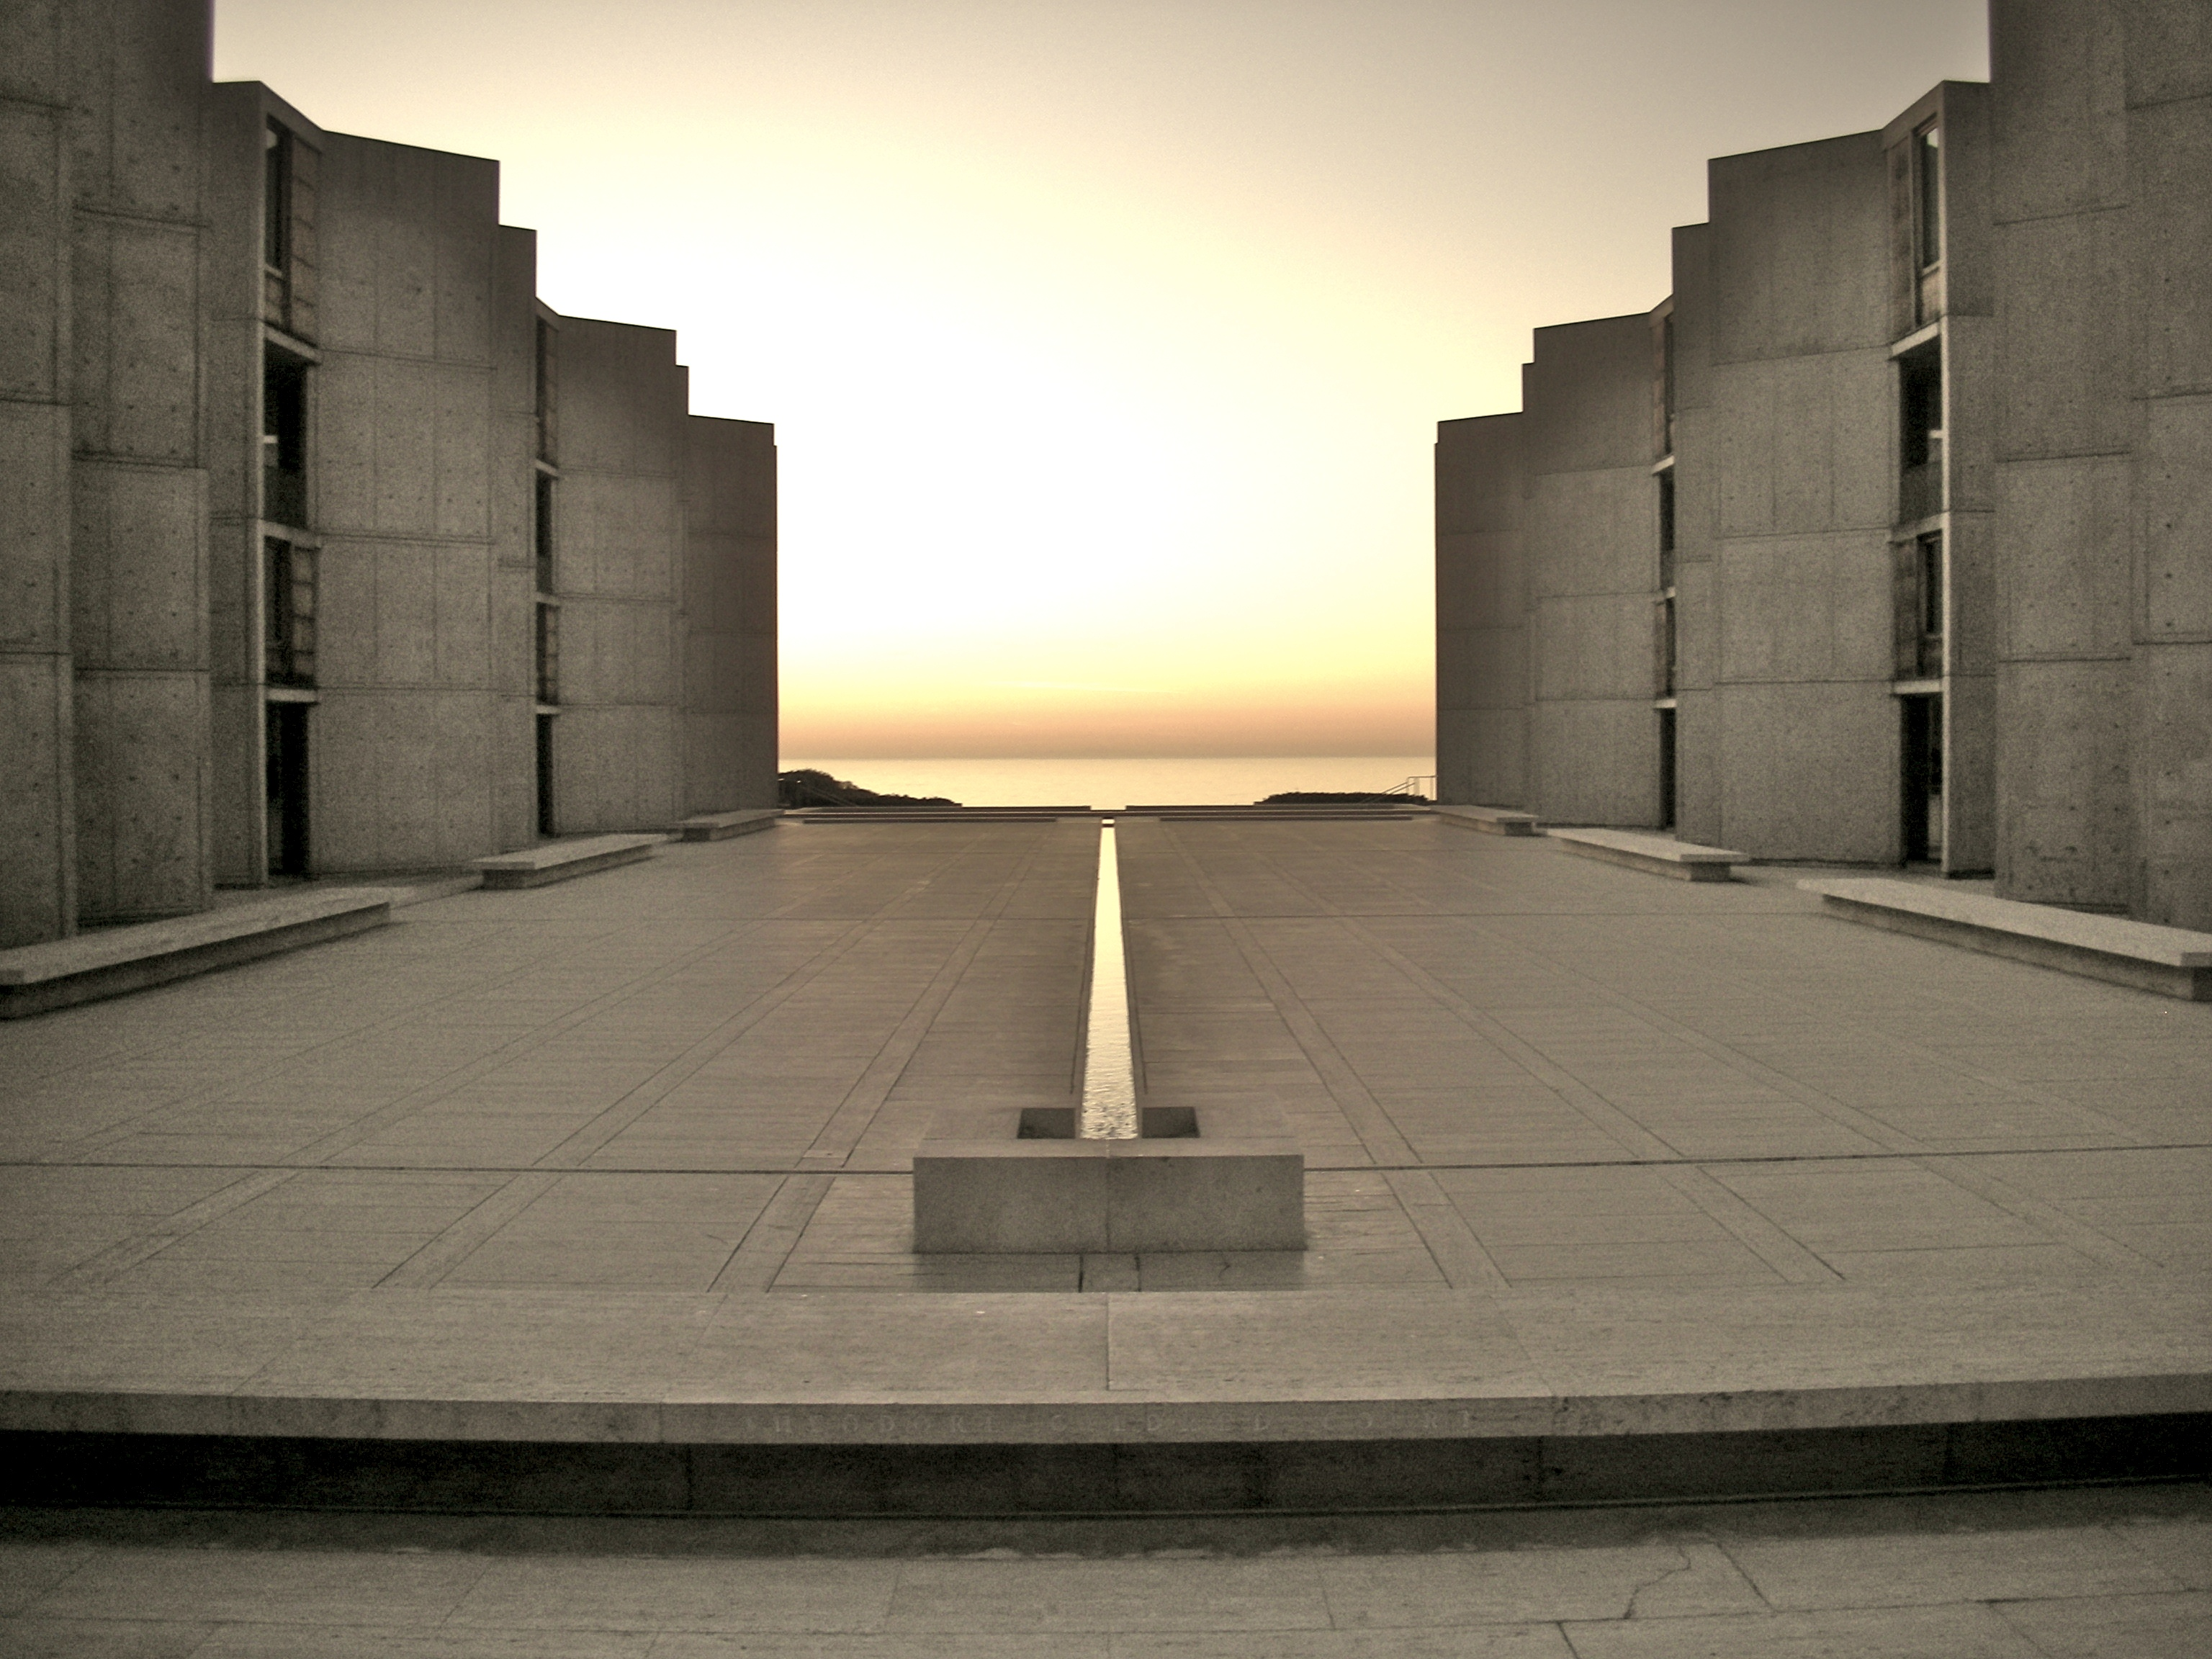 Beau See The Architectural Design Of The Salk Institute In La Jolla